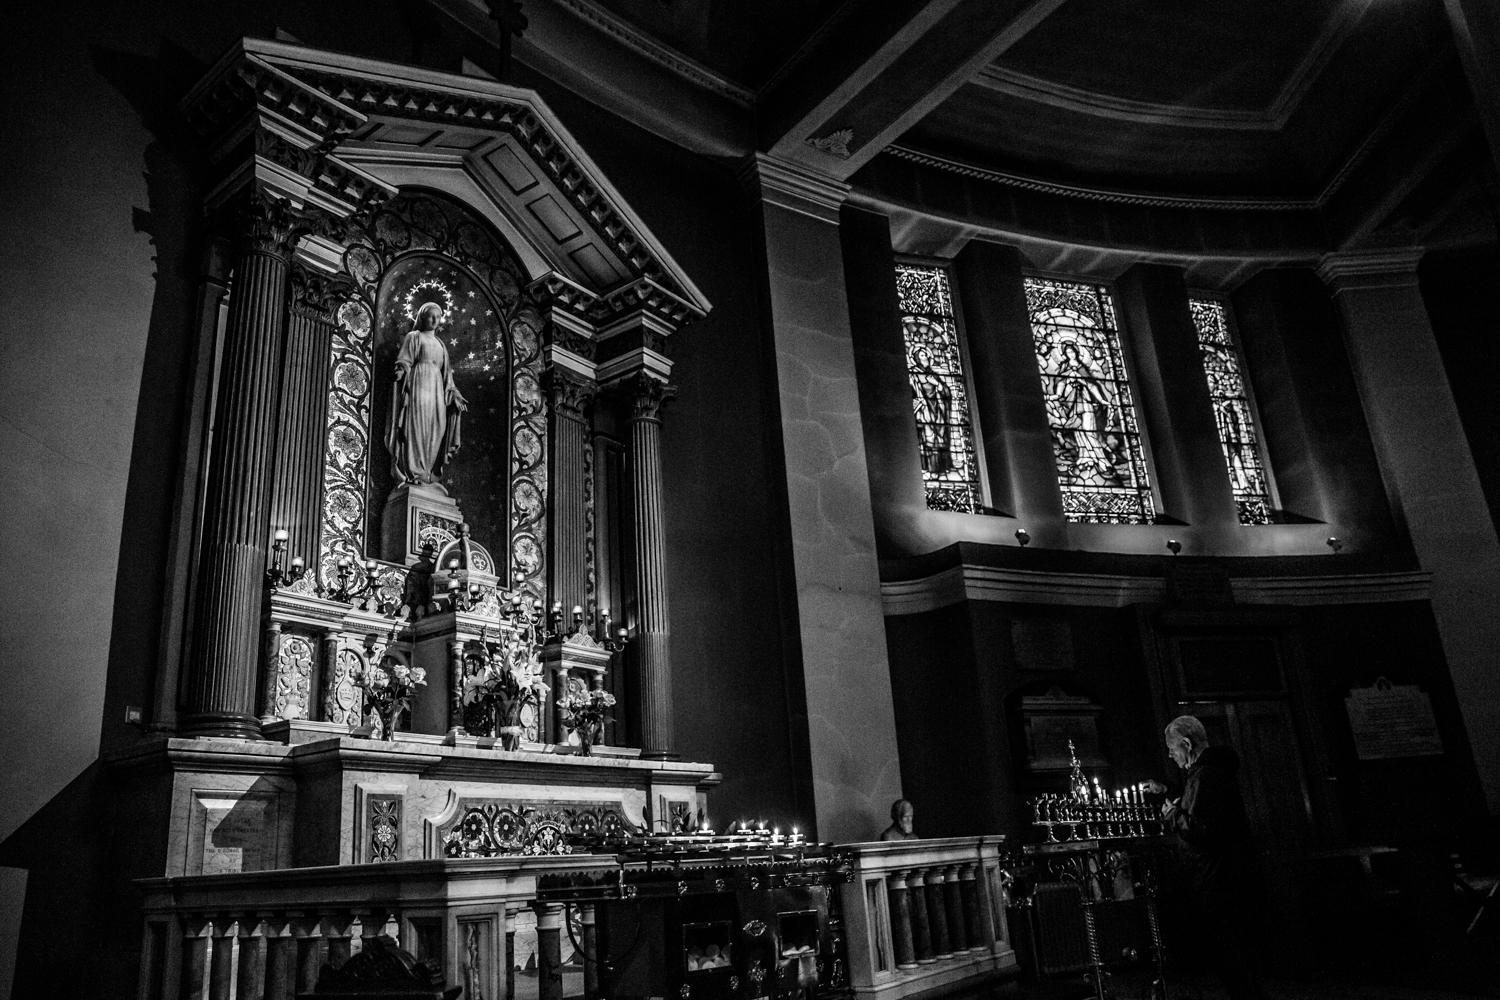 09/10/19: An elderly man is seen inside the Pro Cathedral in Dublin City centre, Ireland. In recent years Ireland has seen a severe decline in the amount of people representing as Catholics. The 2016 census saw 10% of the country state to having no religion which makes it the largest grouping after Catholicism in the Republic of Ireland.